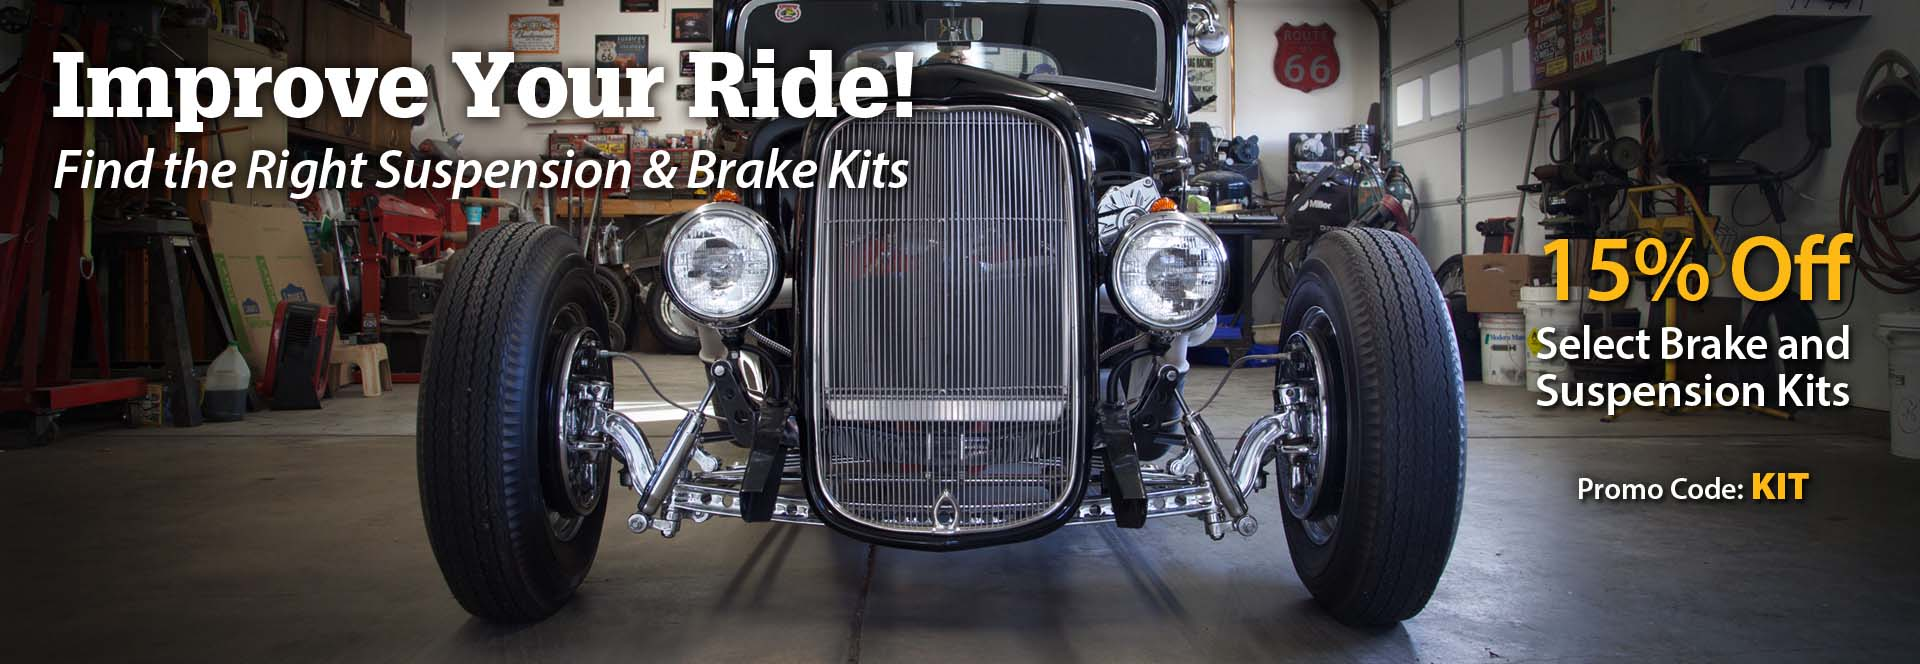 Find the Right Suspension & Brake Parts!